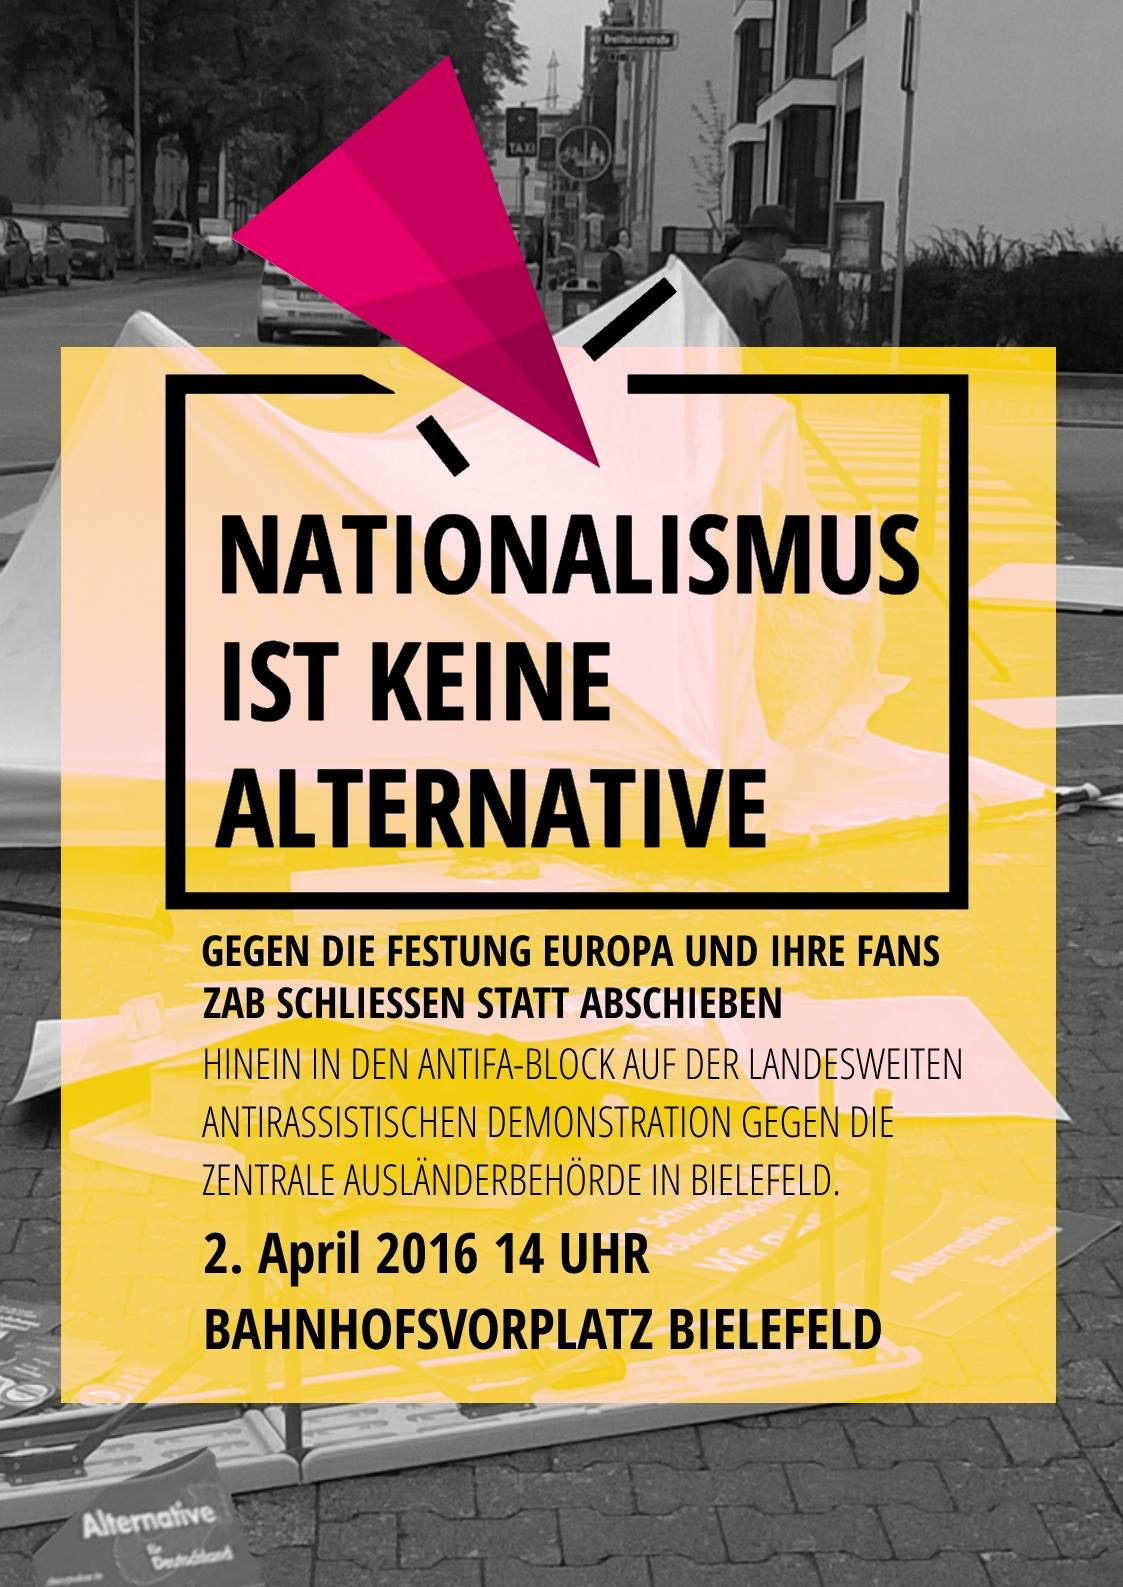 demonstrationen in essen und bielefeld am samstag autonome antifa 170. Black Bedroom Furniture Sets. Home Design Ideas